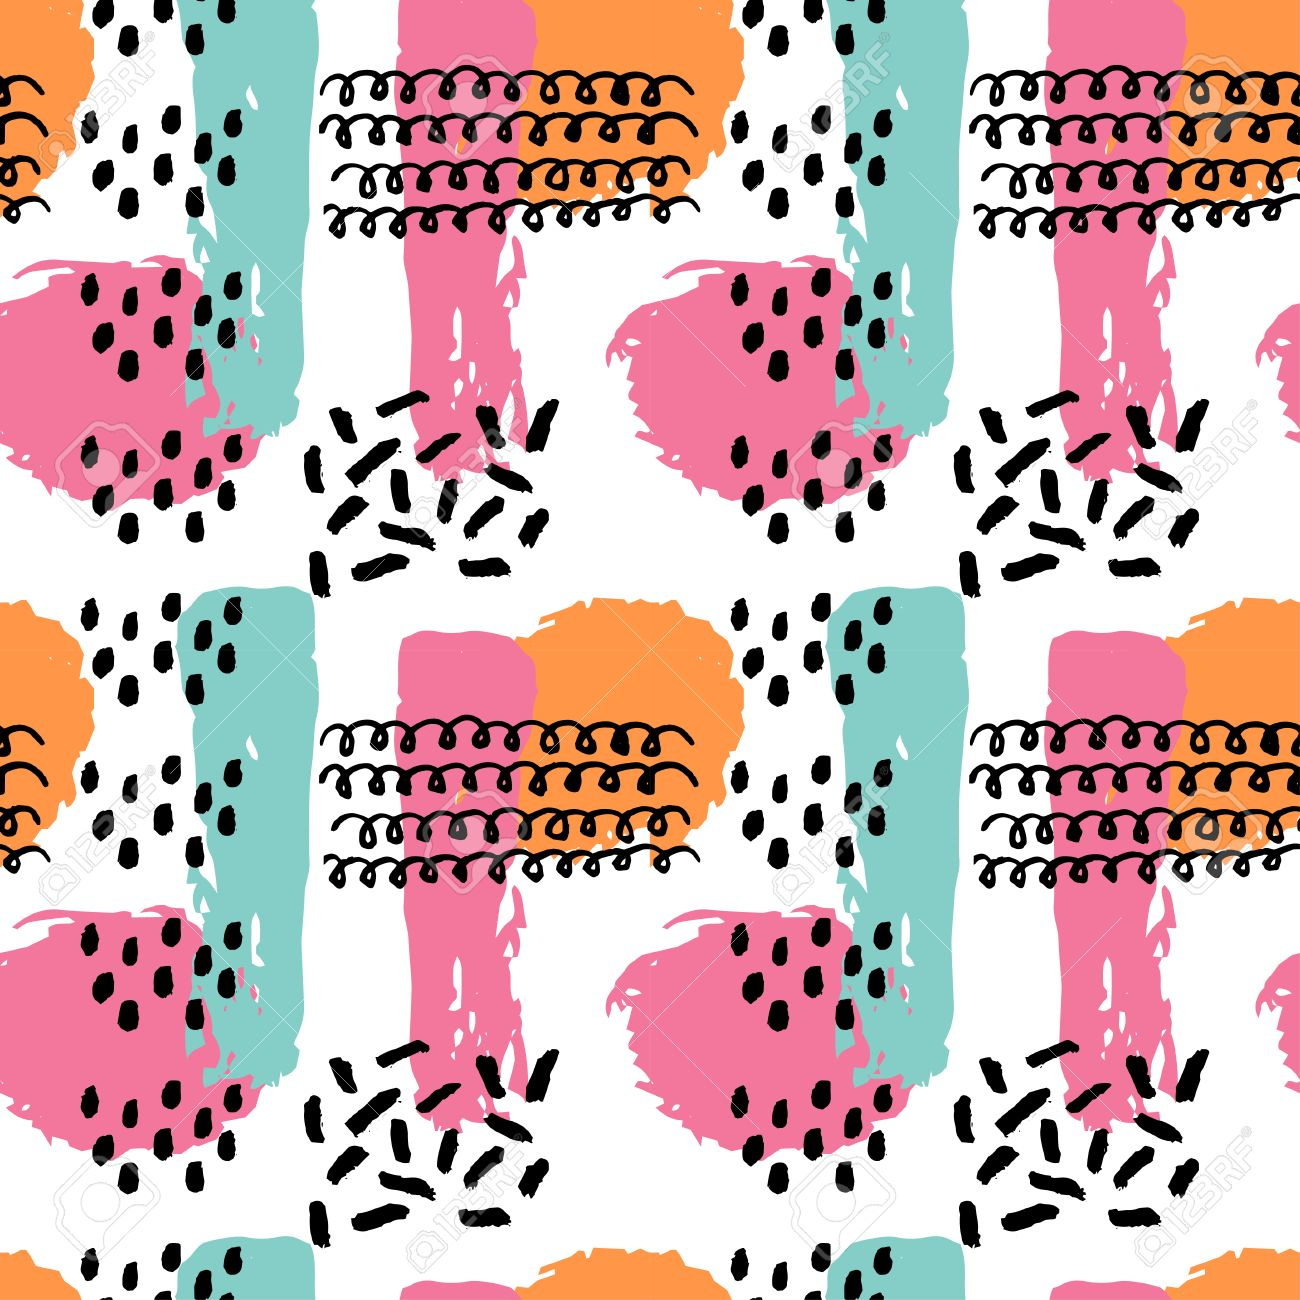 Memphis abstract seamless pattern background in retro vintage